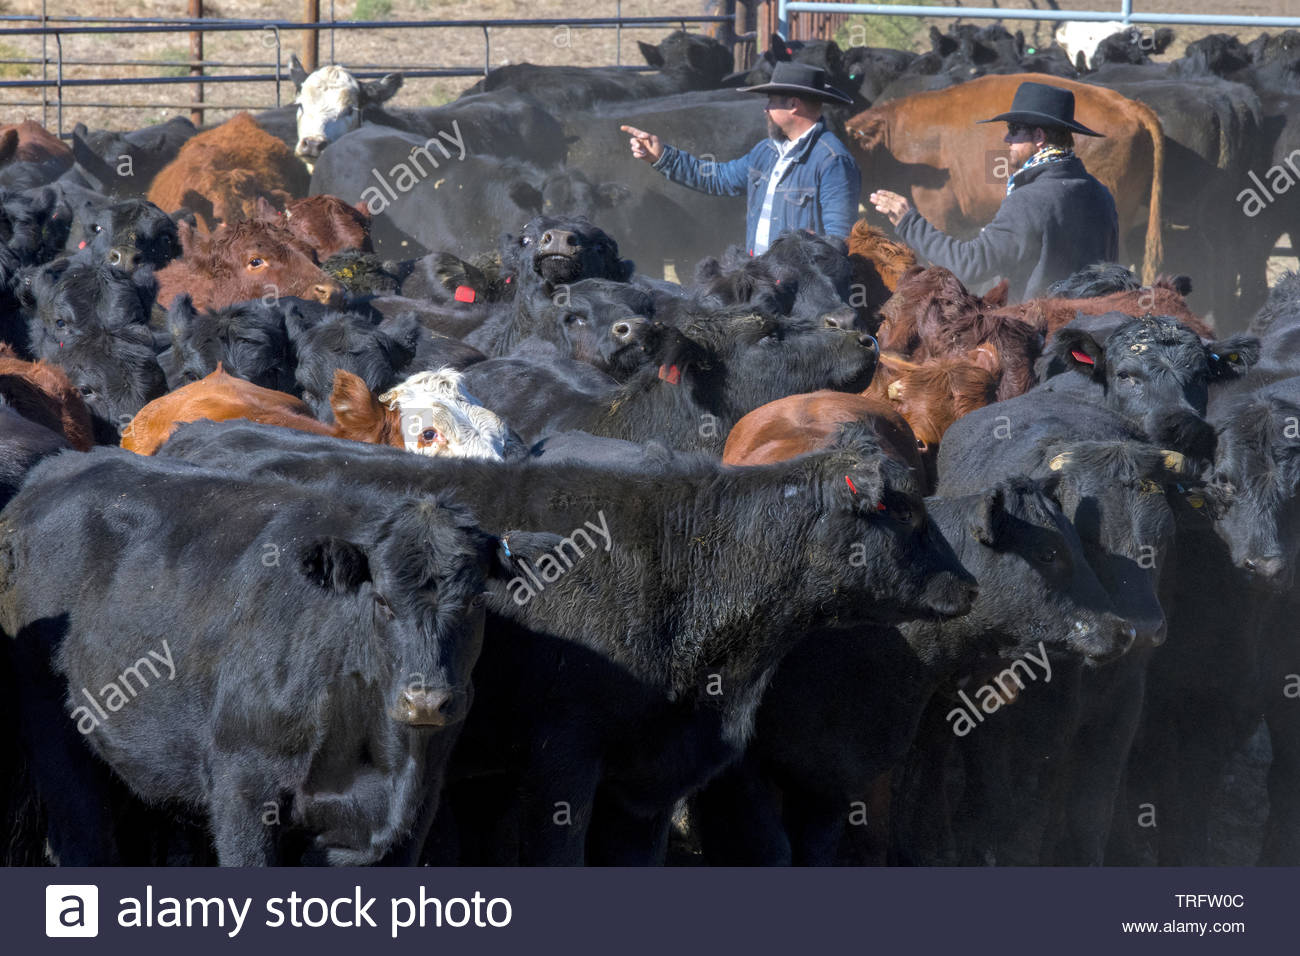 United States, Montana, Belfry, cowboys sorting out cows to be sent out to feeding ranches in Nebraska - Stock Image